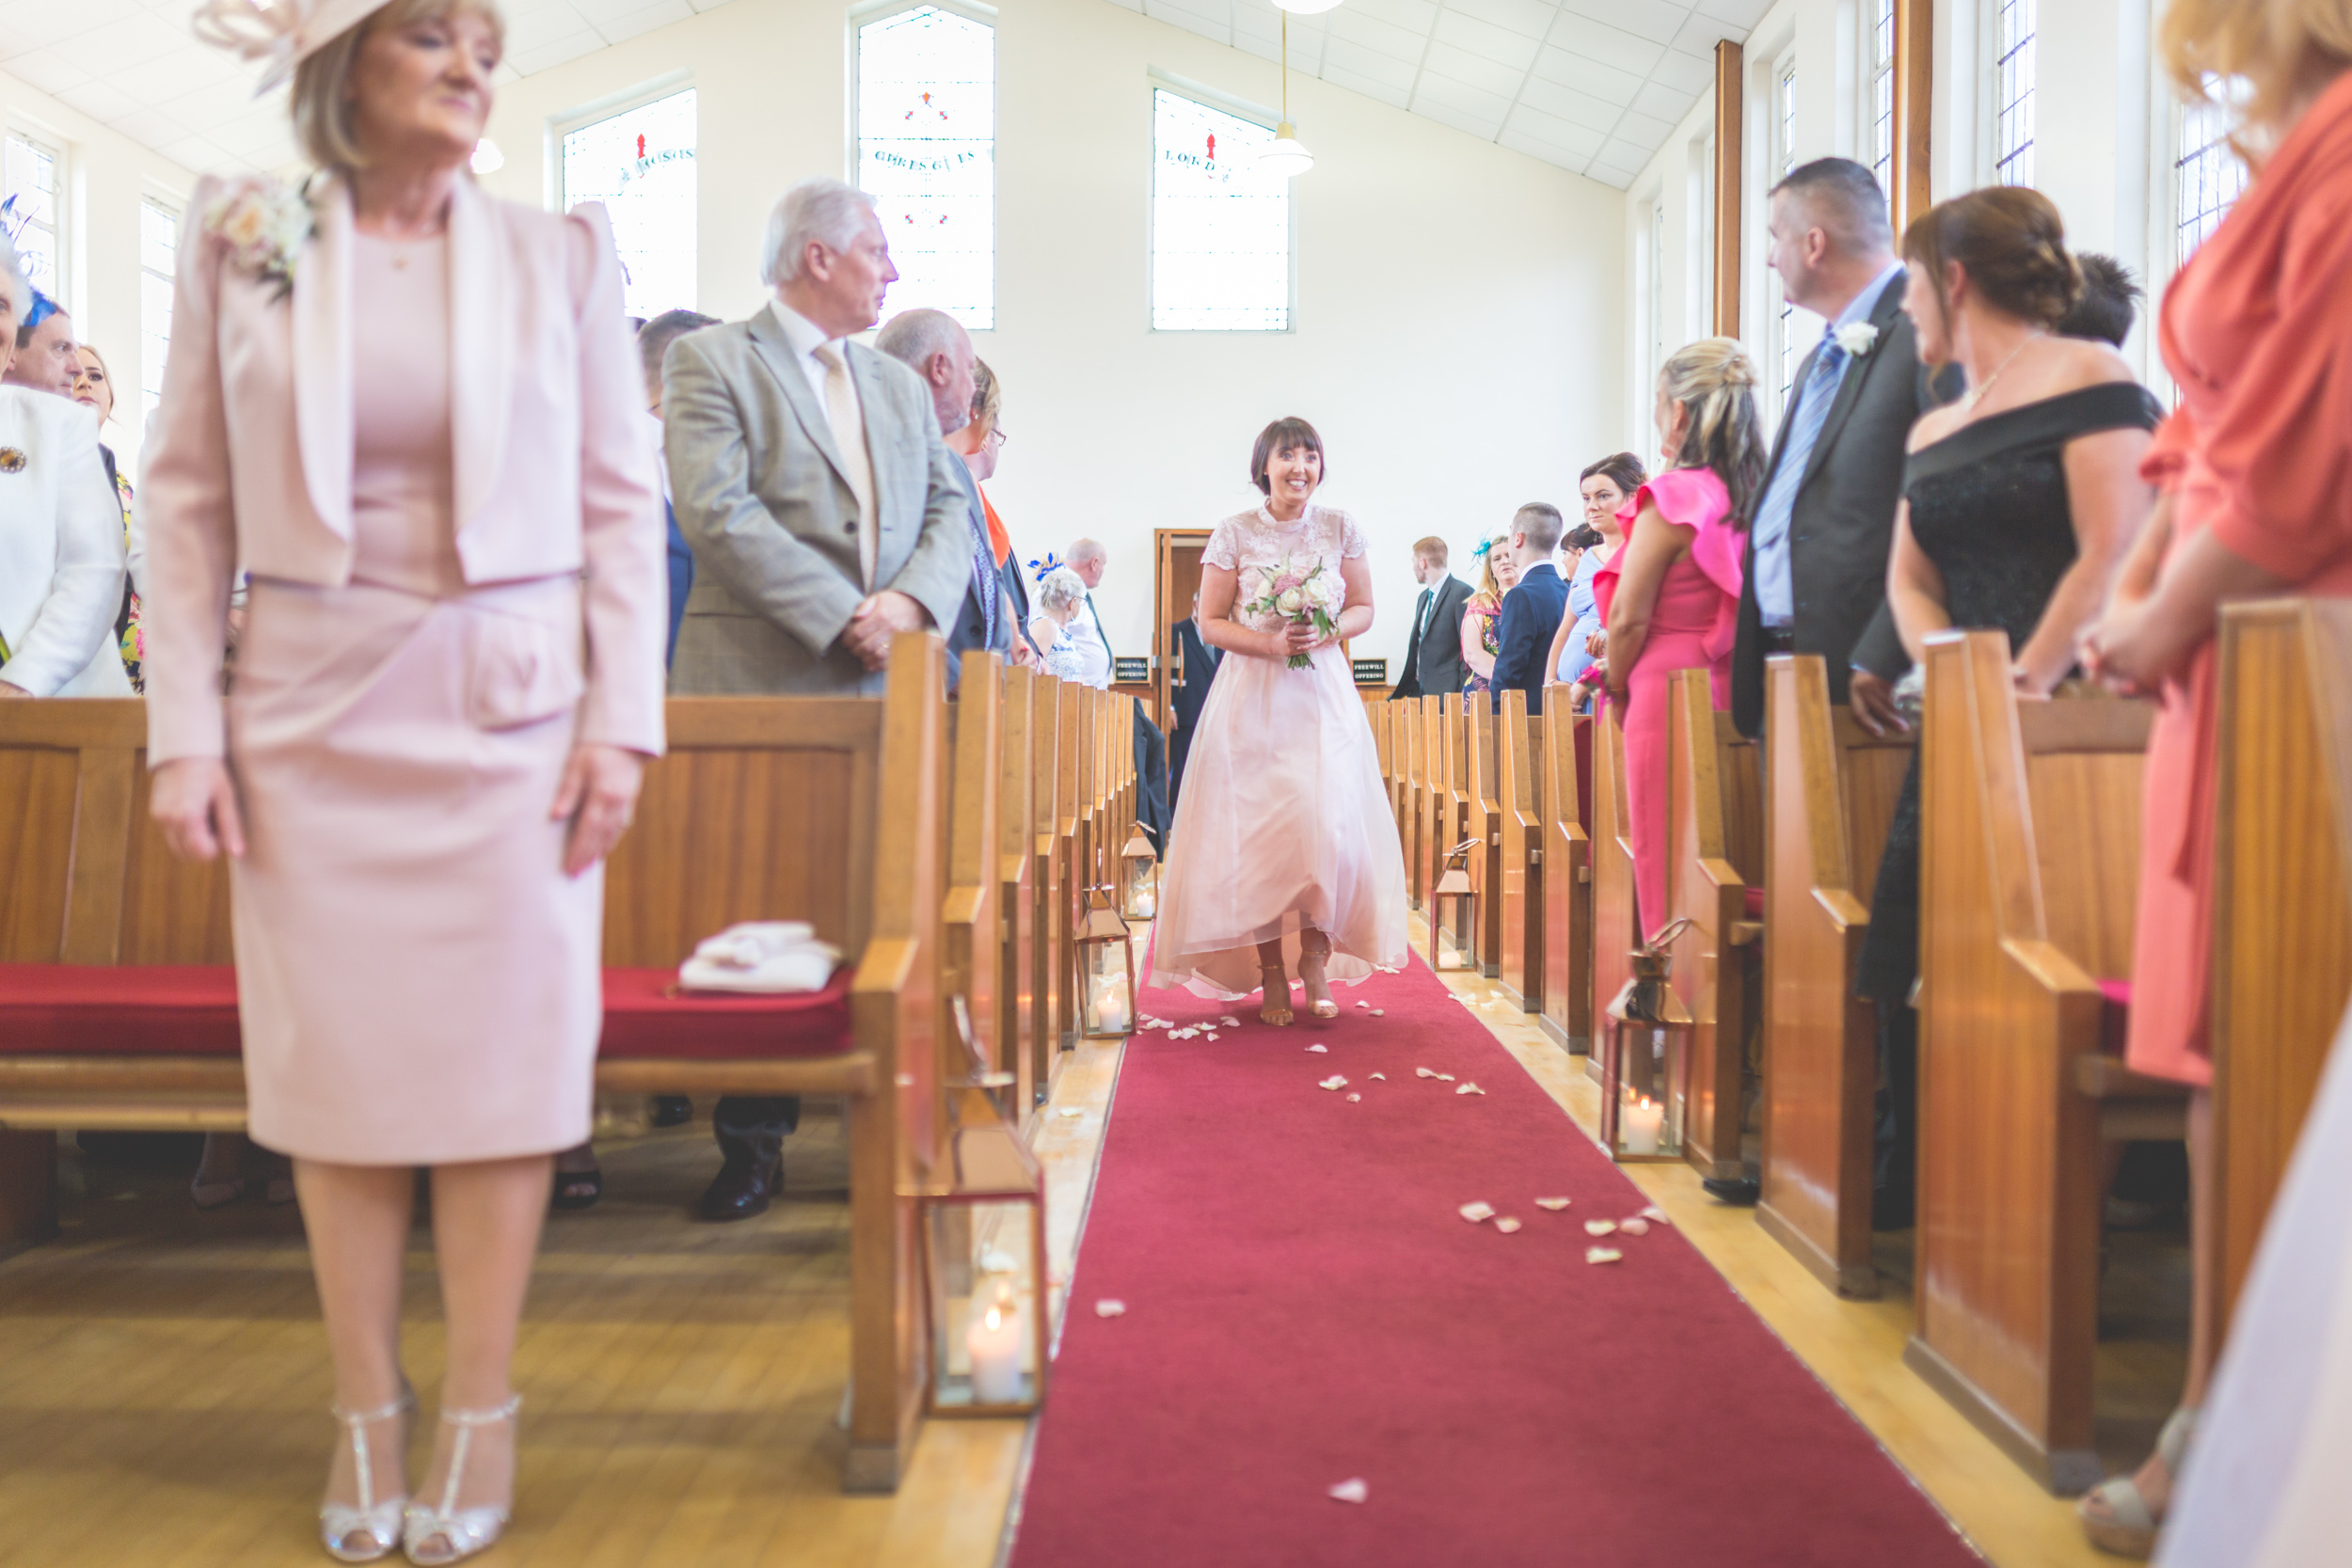 Brian McEwan | Northern Ireland Wedding Photographer | Rebecca & Michael | Ceremony-13.jpg